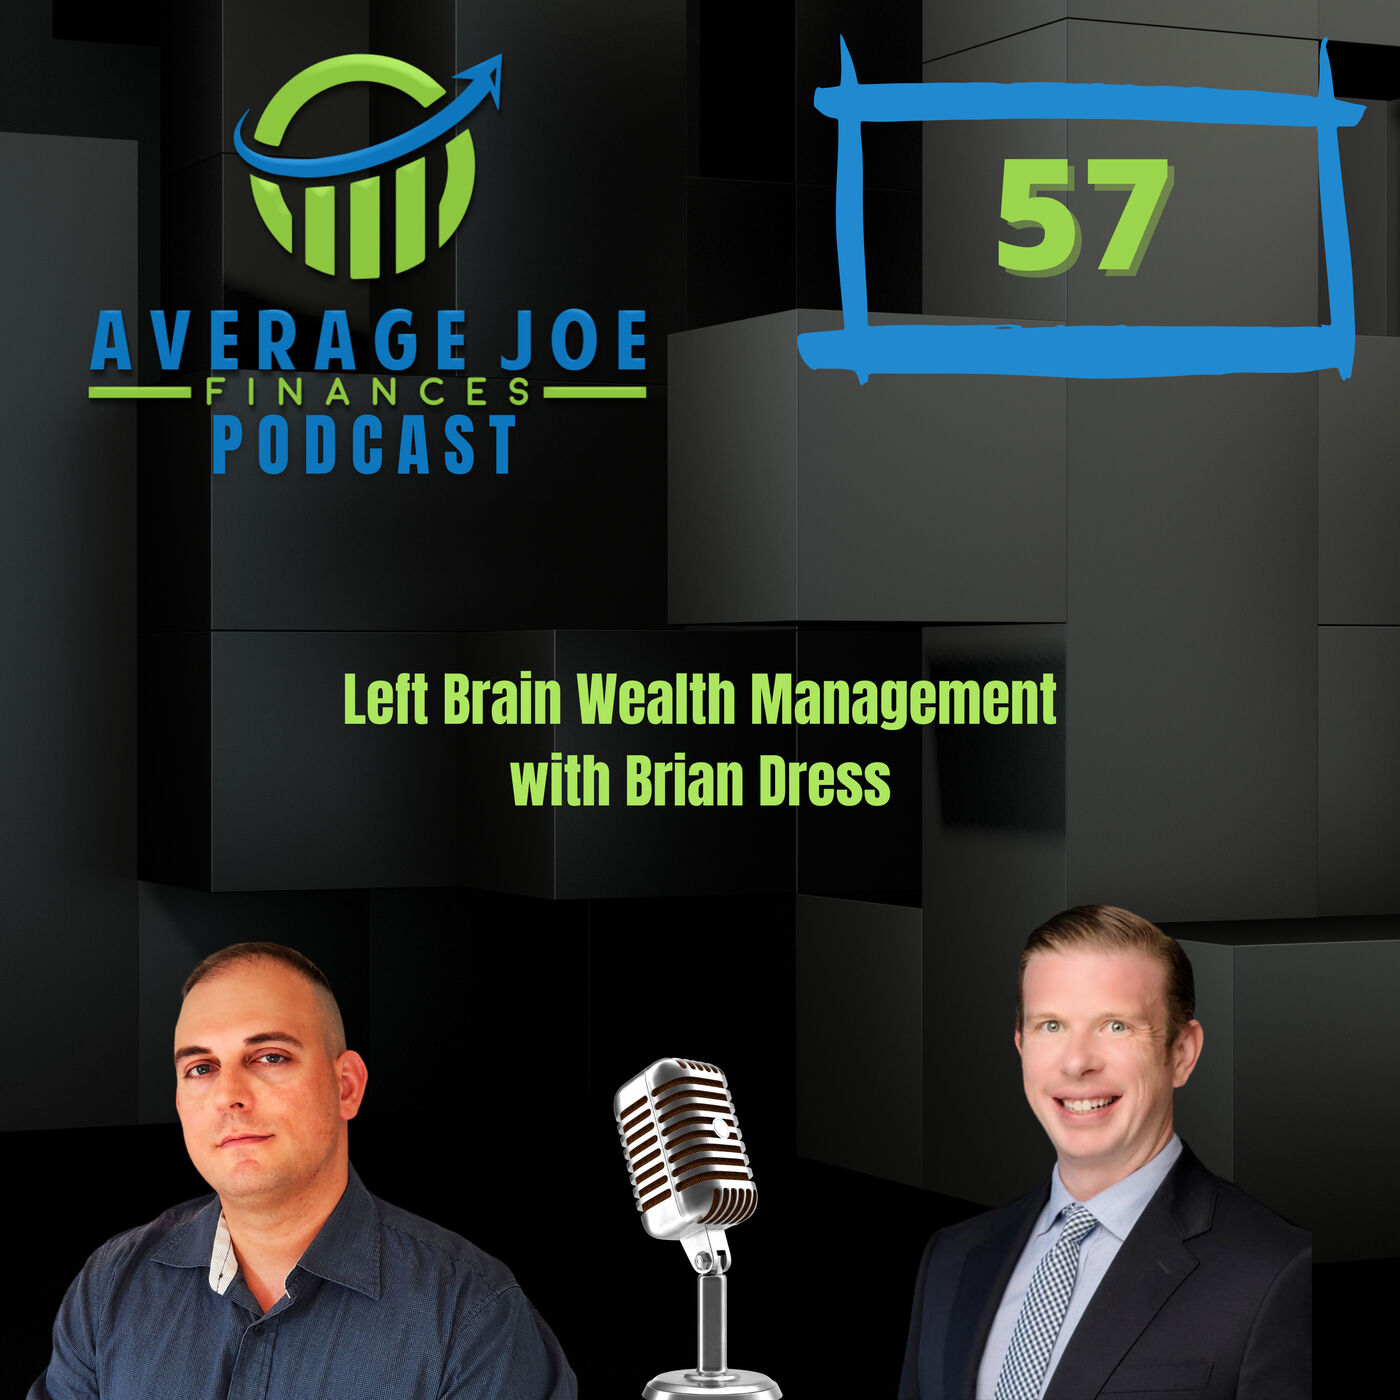 Ep 57 - Left Brain Wealth Management with Brian Dress